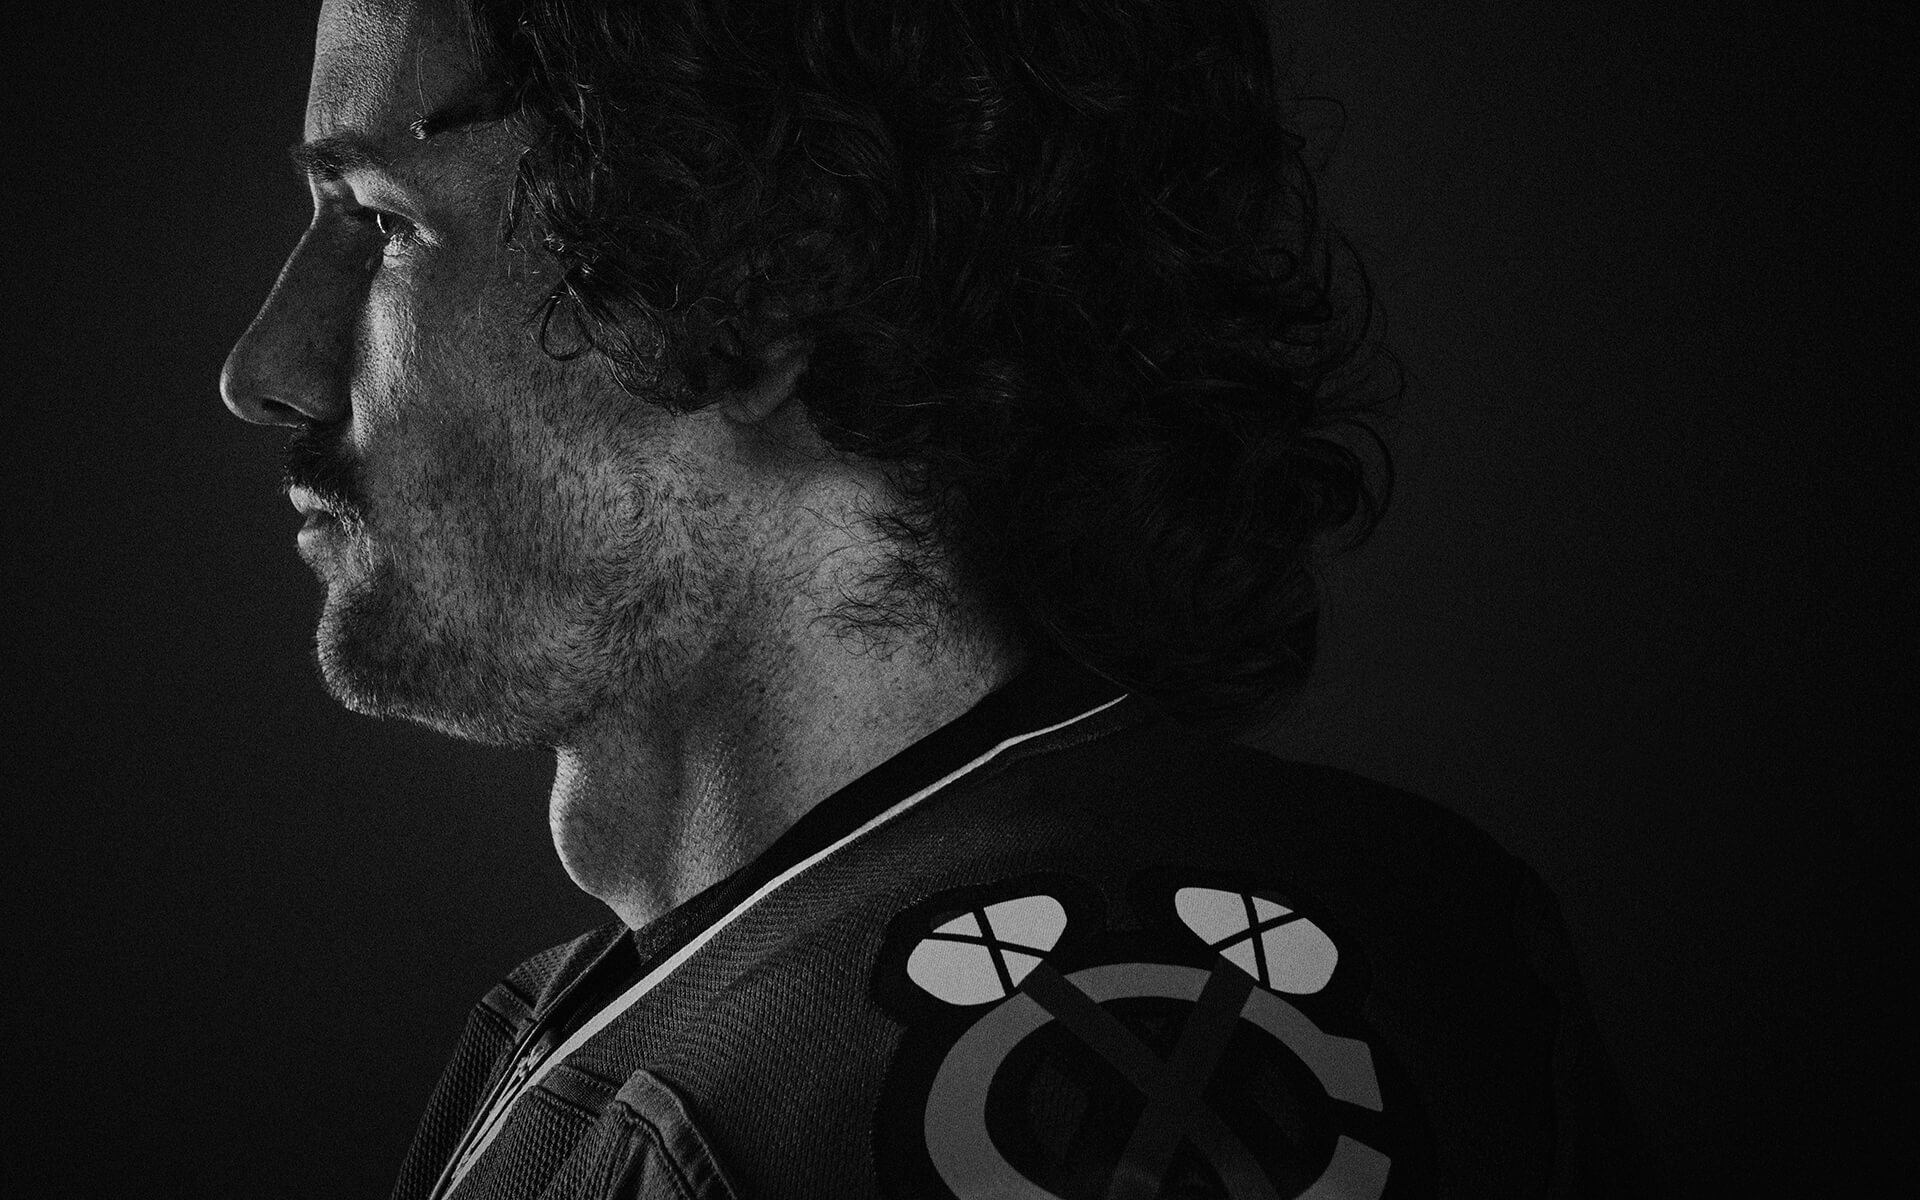 Unified Content, Unified Content Toronto, Aaron Cobb, Visa, Athletes, Duncan Keith, Dramatic, Action, Headshot, Advertising, Black and White,